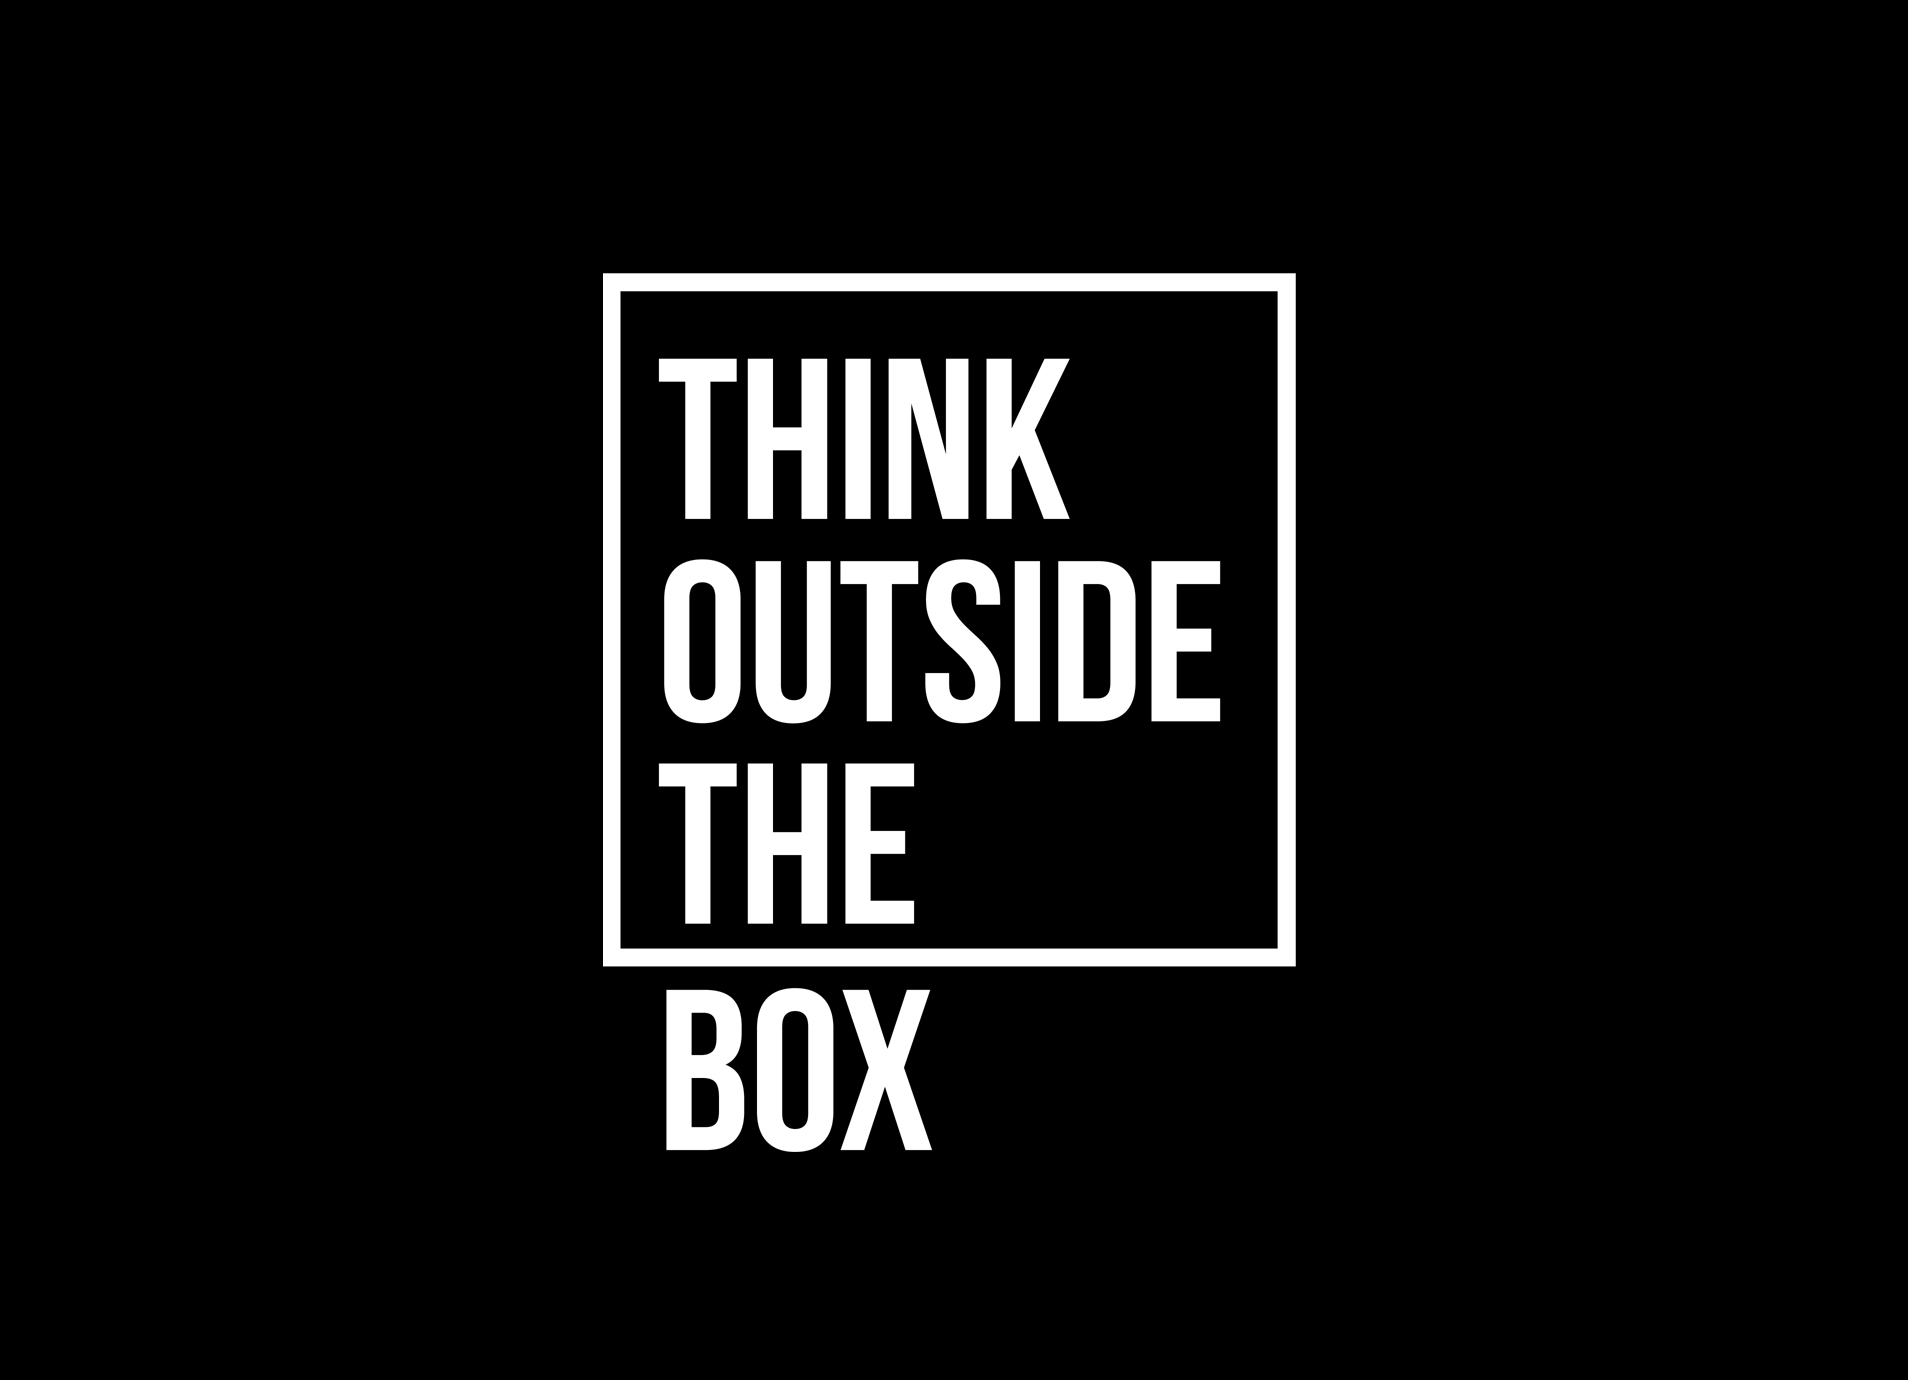 think outside the box designer fun t shirts likoli. Black Bedroom Furniture Sets. Home Design Ideas